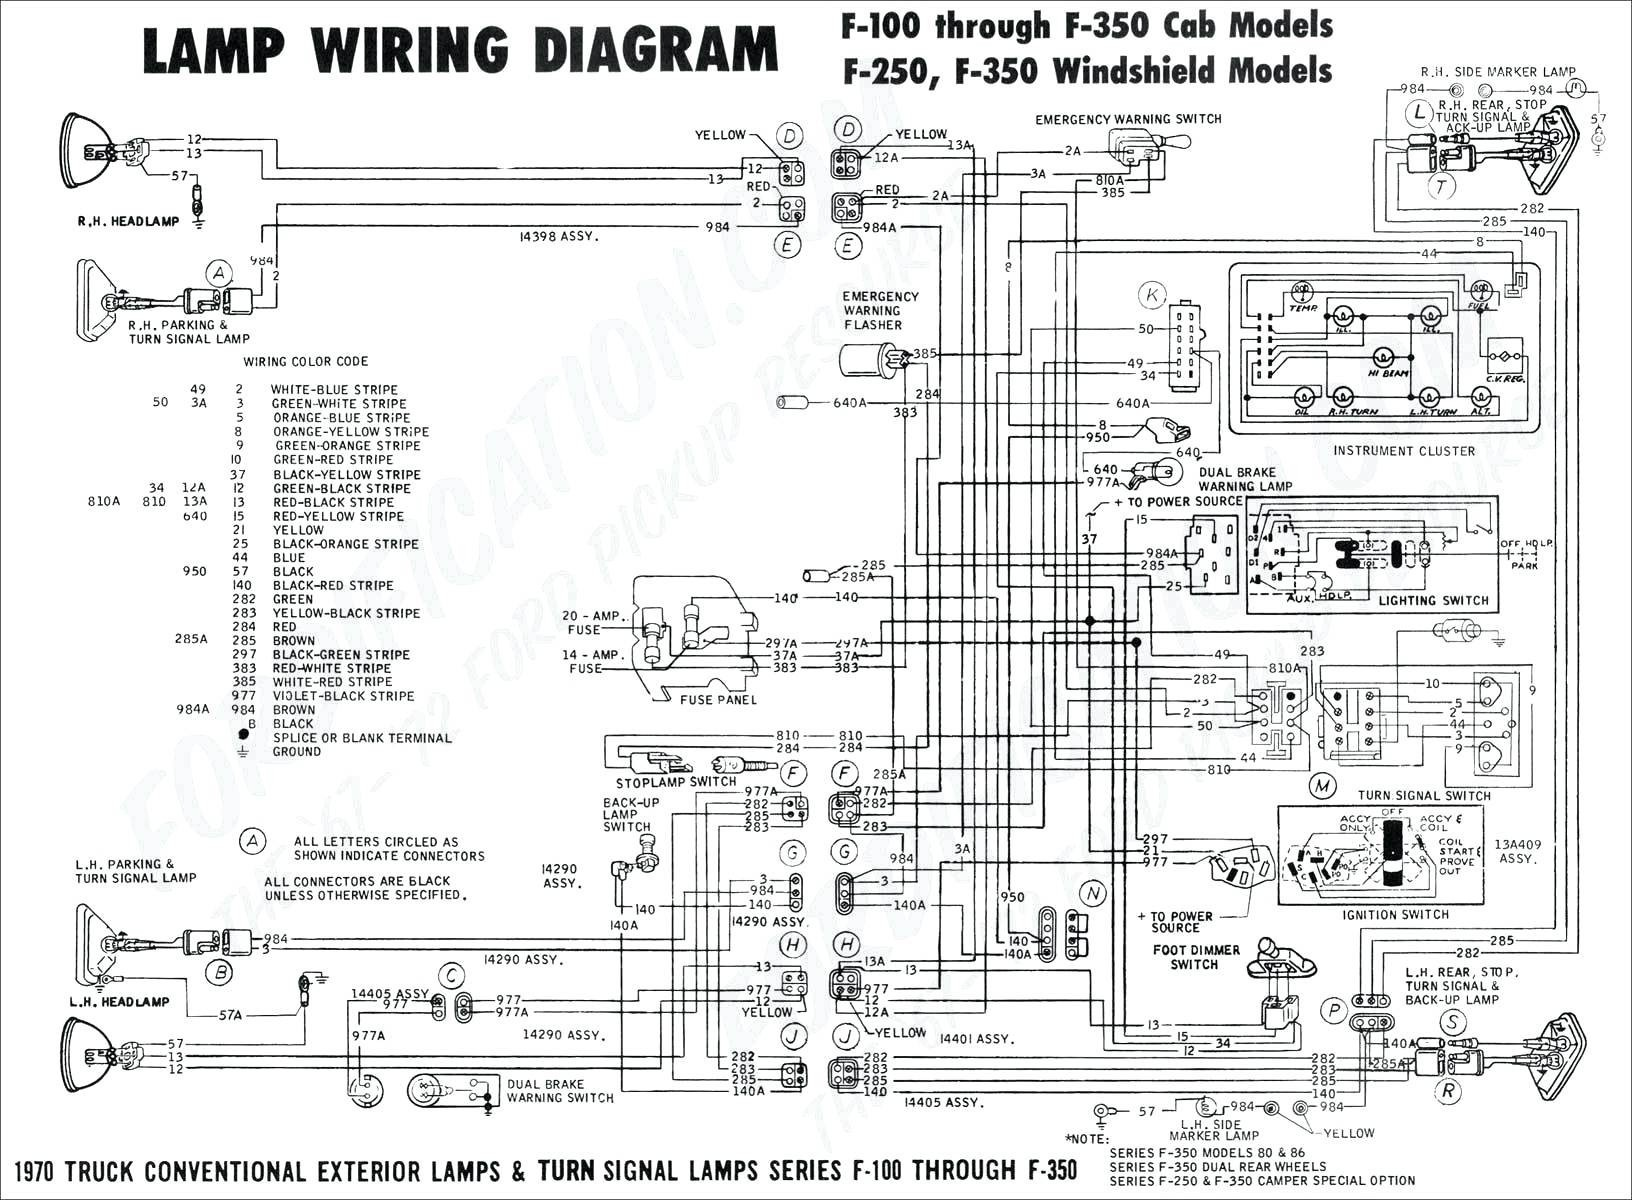 Mercruiser 140 Engine Diagram 2000 ford Ranger Horn Wiring Another Blog About Wiring Diagram • Of Mercruiser 140 Engine Diagram